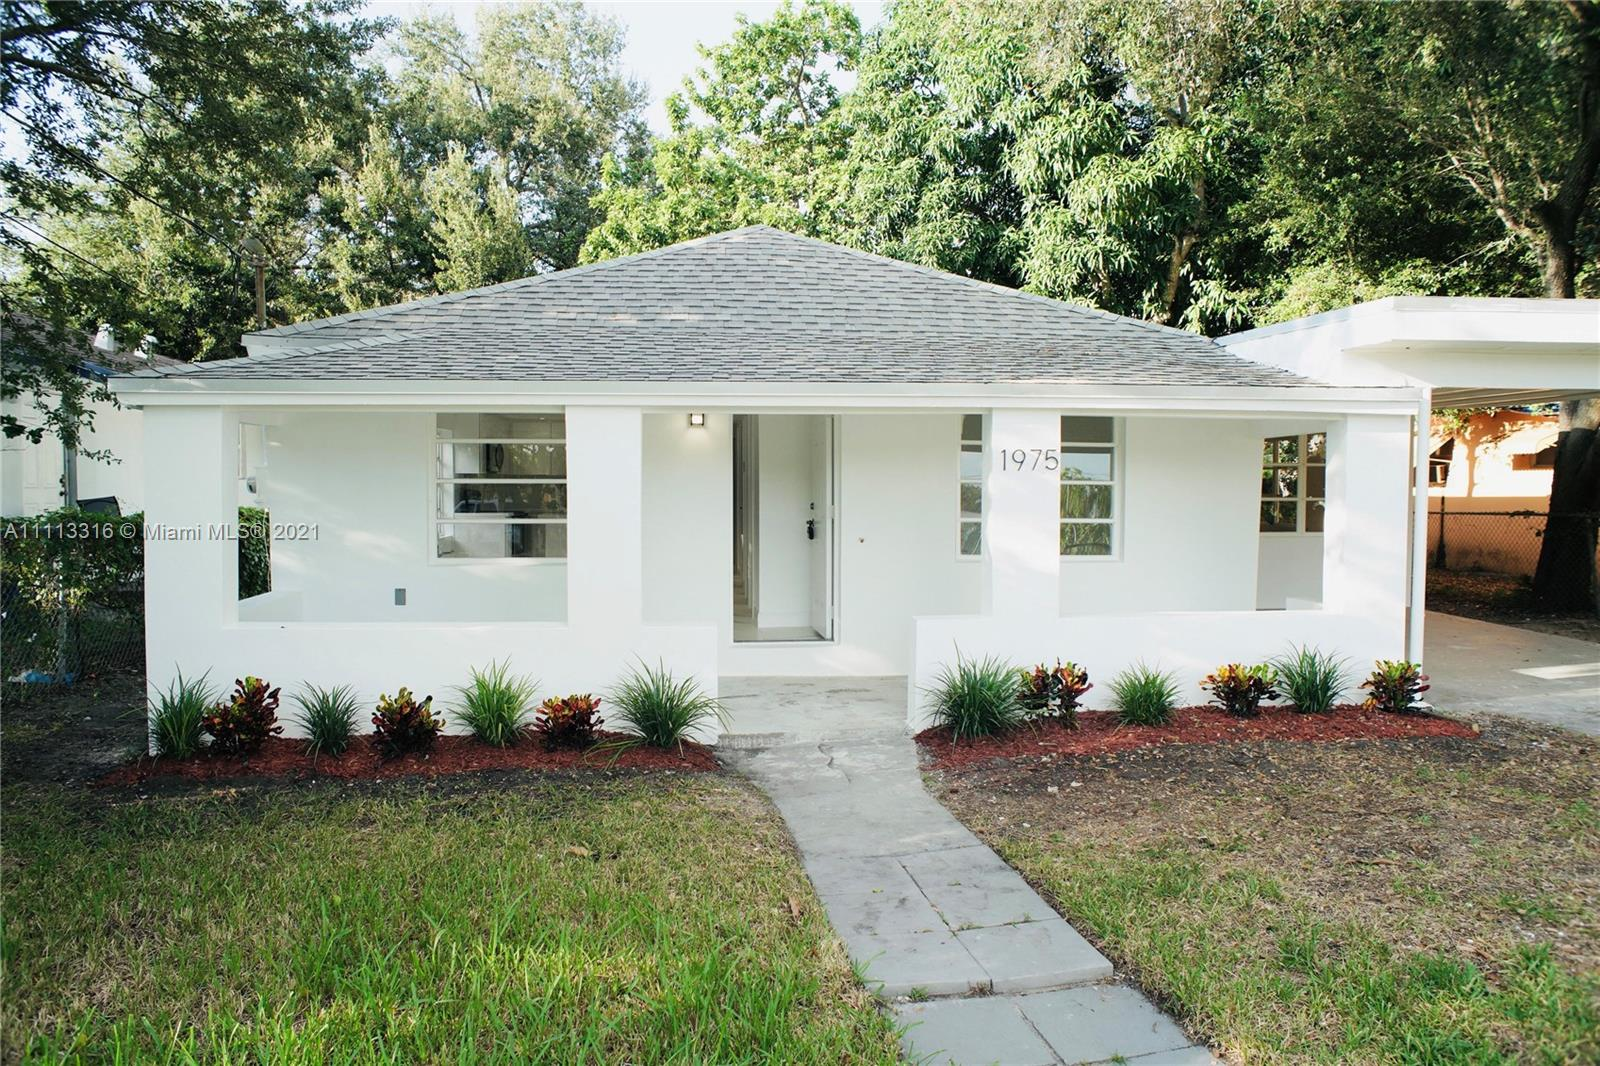 Undisclosed For Sale A11113316, FL